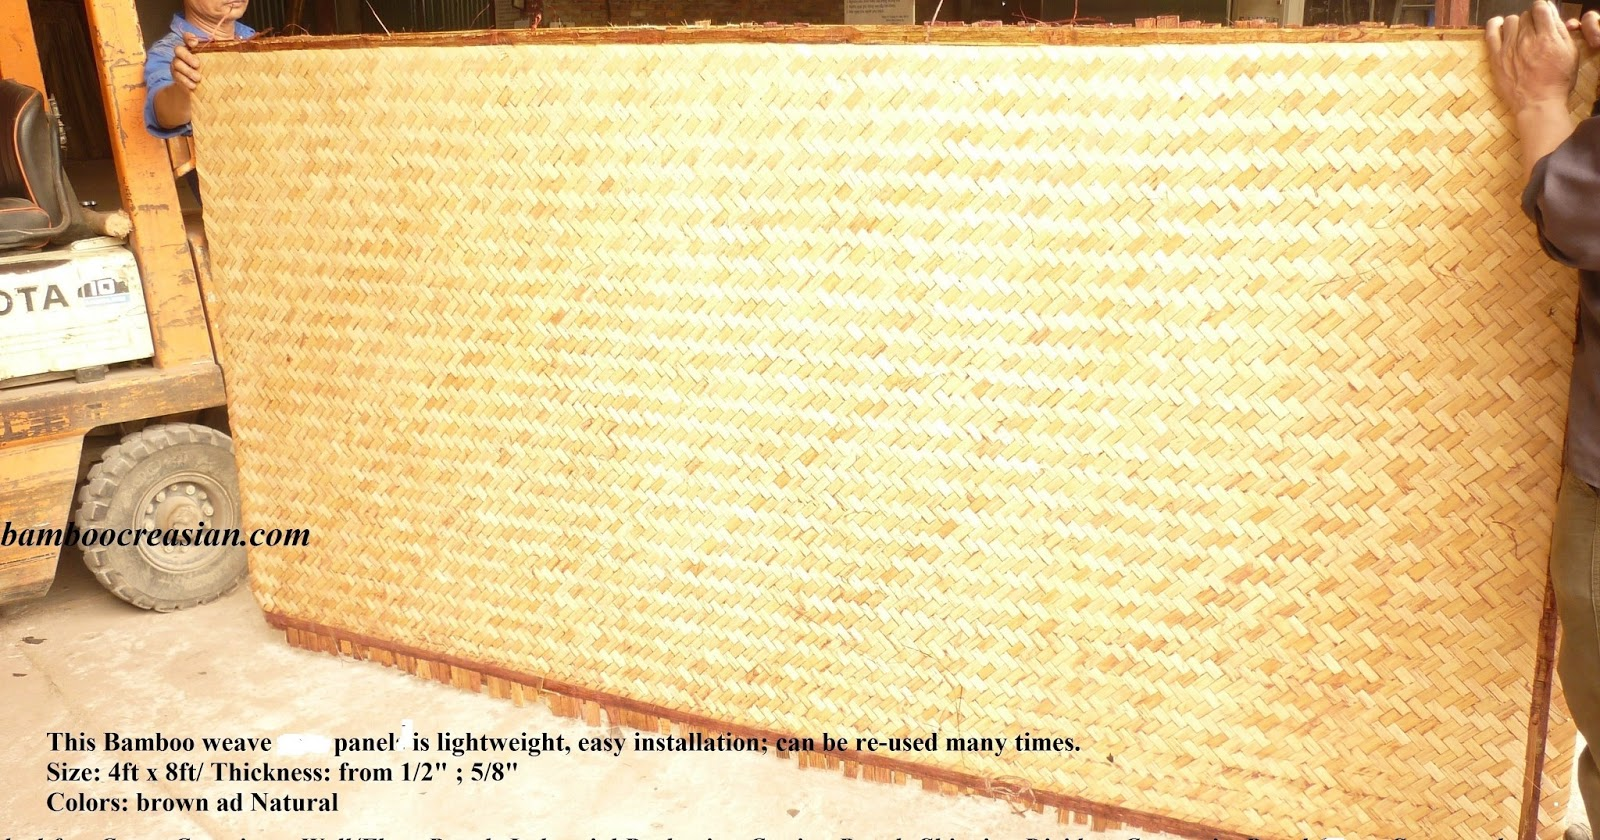 Quality Bamboo and Asian Thatch: Exterior Bamboo Weave Panels ...